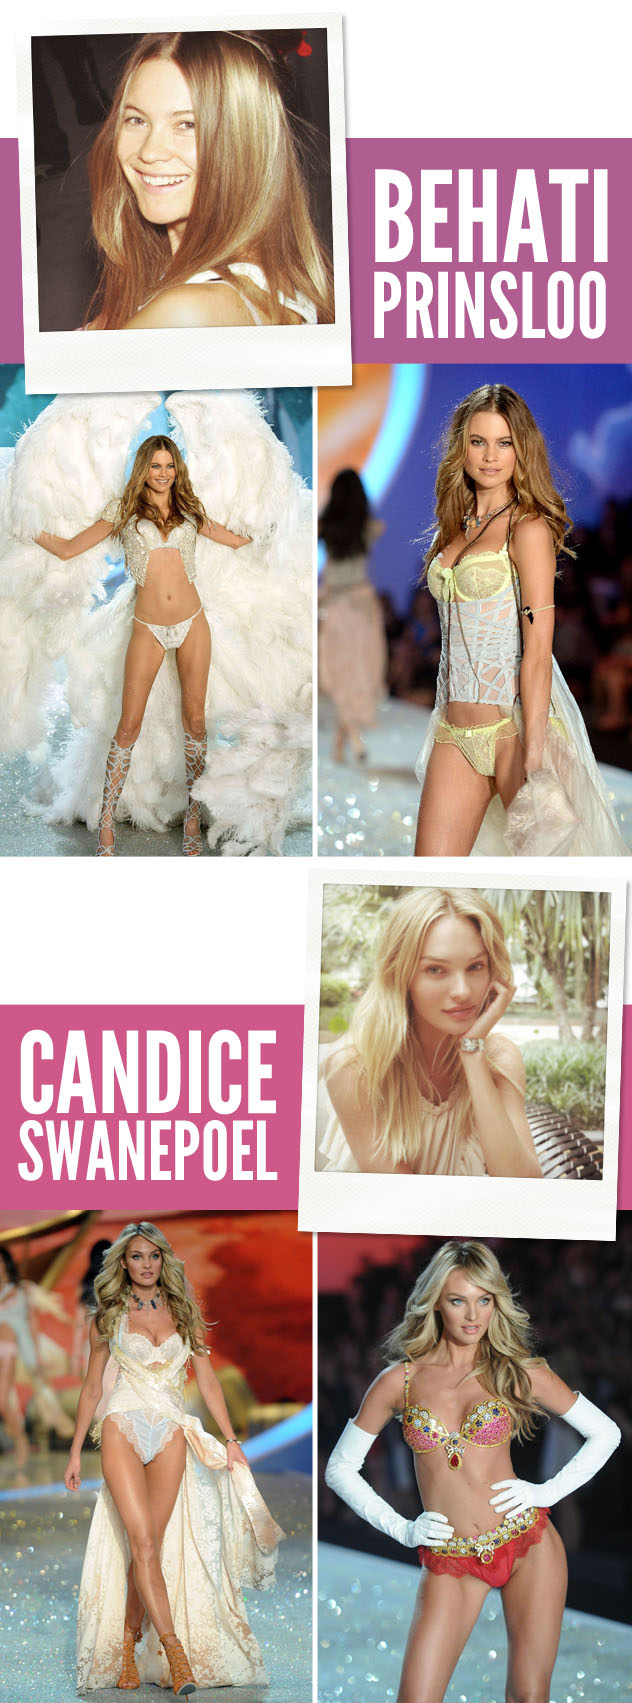 12_9blogpost_VS_behati_can